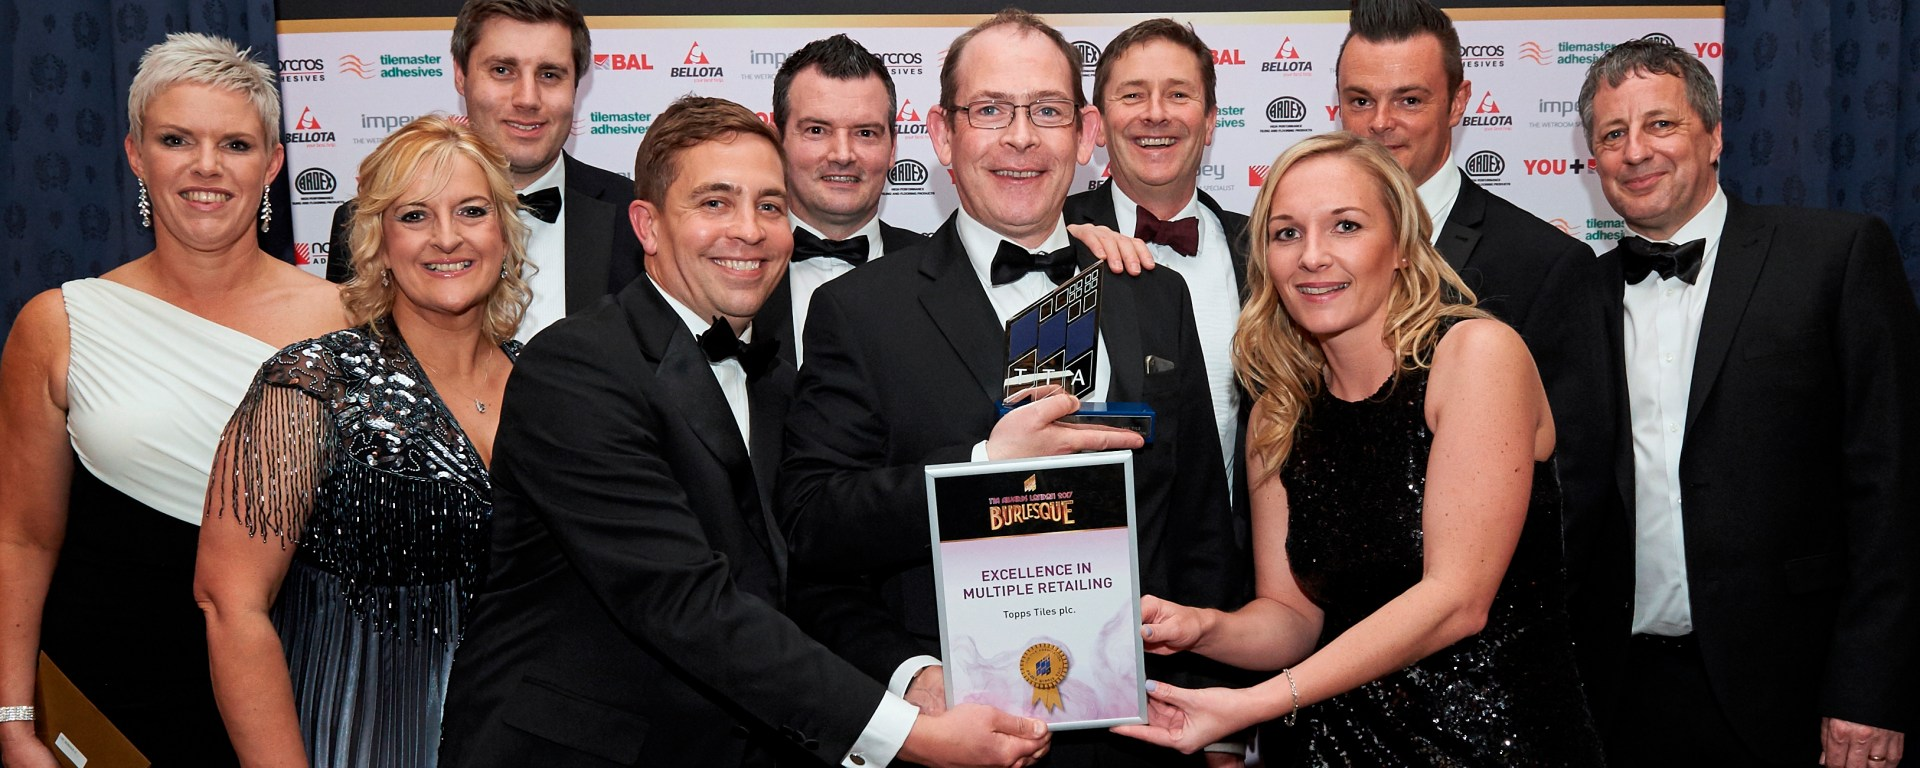 Topps Tiles receives the Excellence in Multiple Retailing award at TTA Awards 2017.